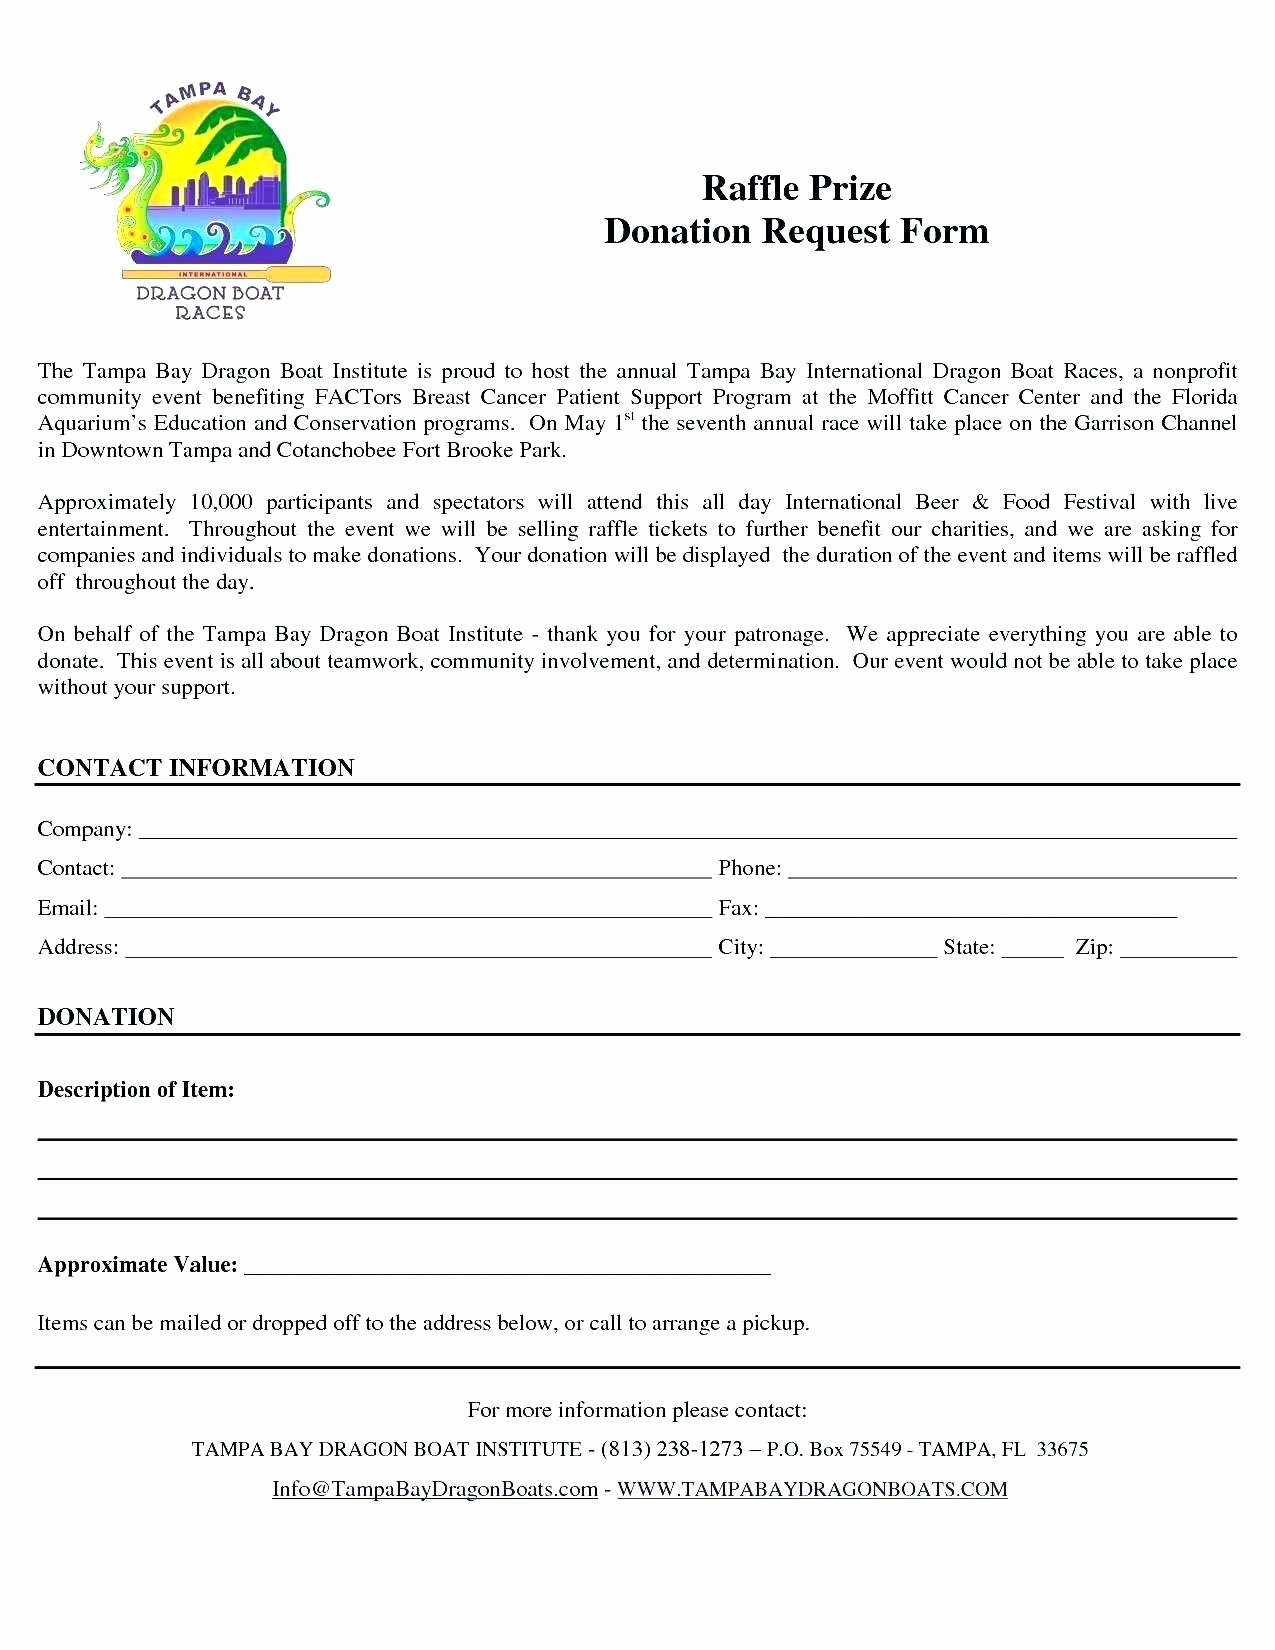 Template Letter Template for Donations Request